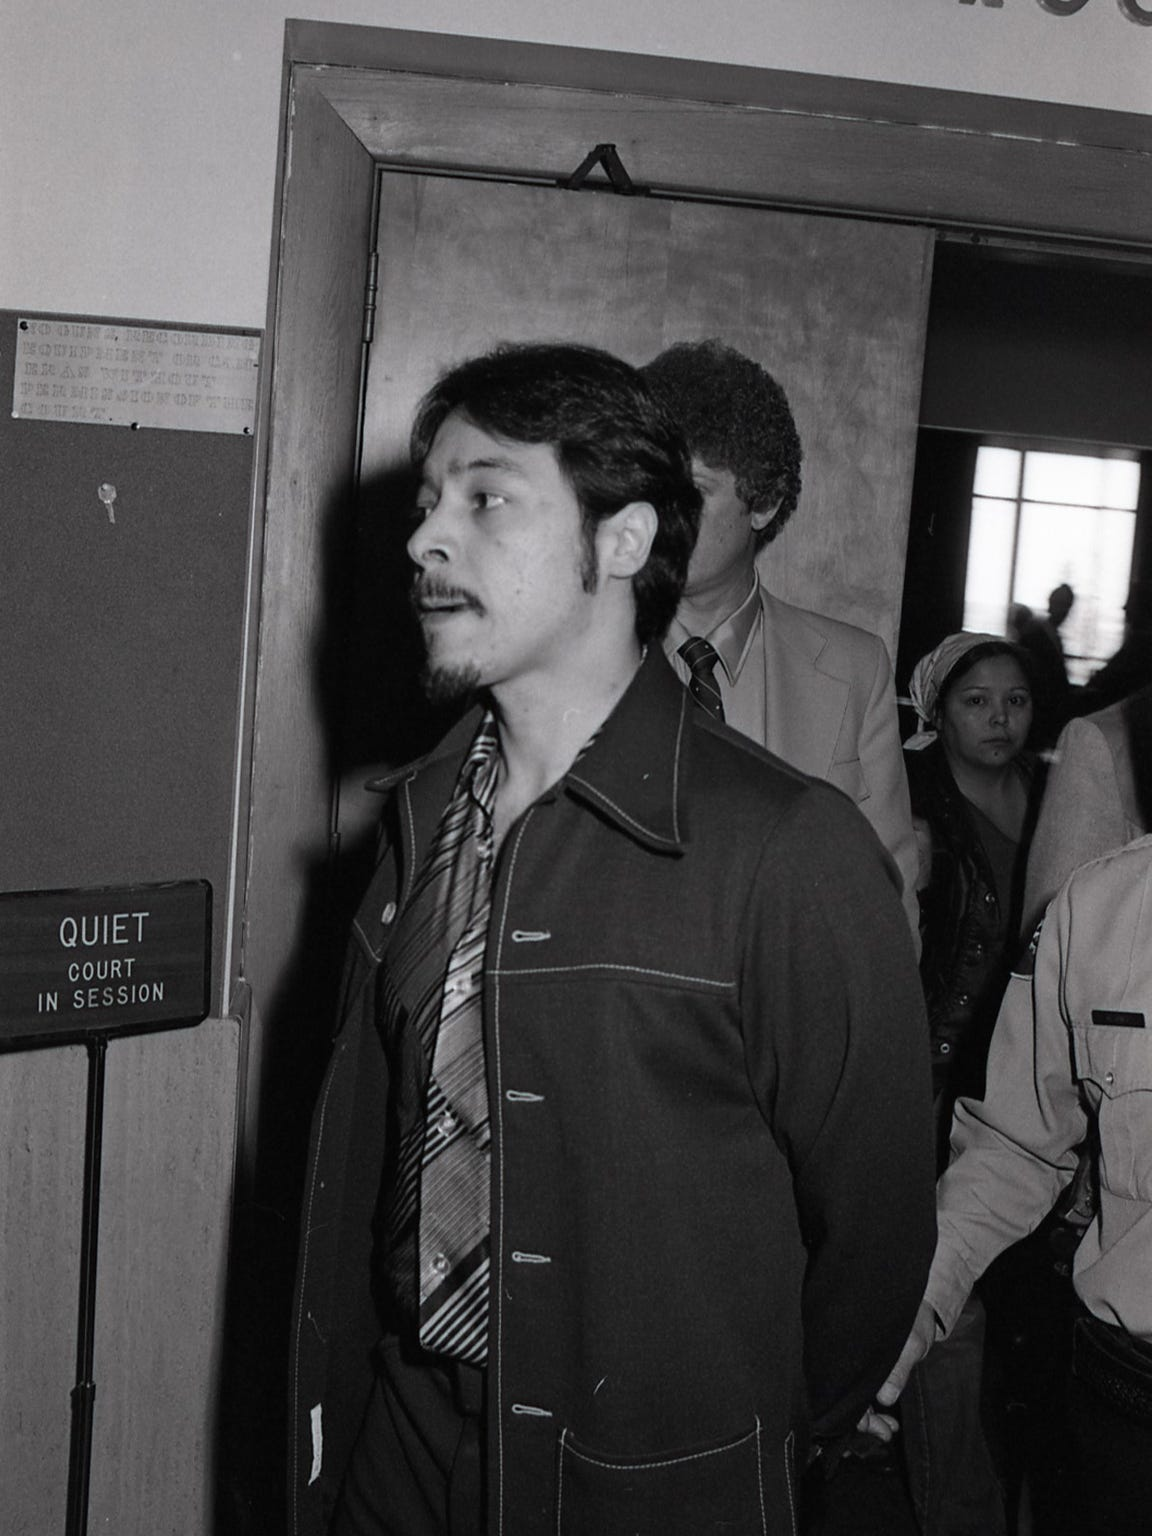 Santos Romero Jr. is shown being led out of the courtroom